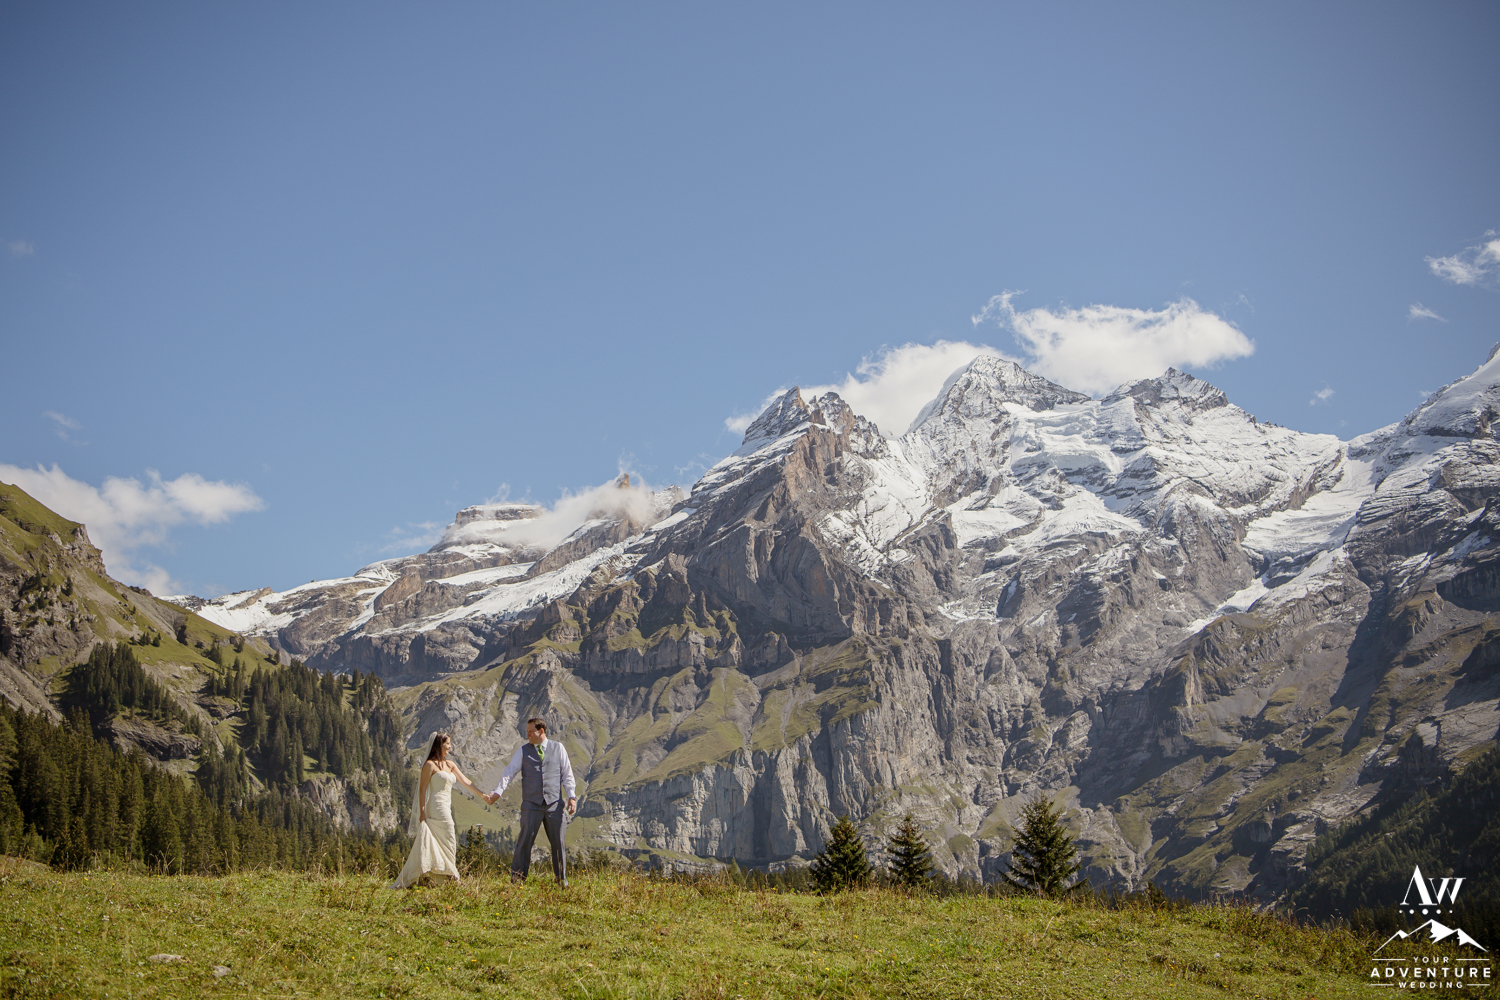 Couple adventuring on their wedding day in Switzerland